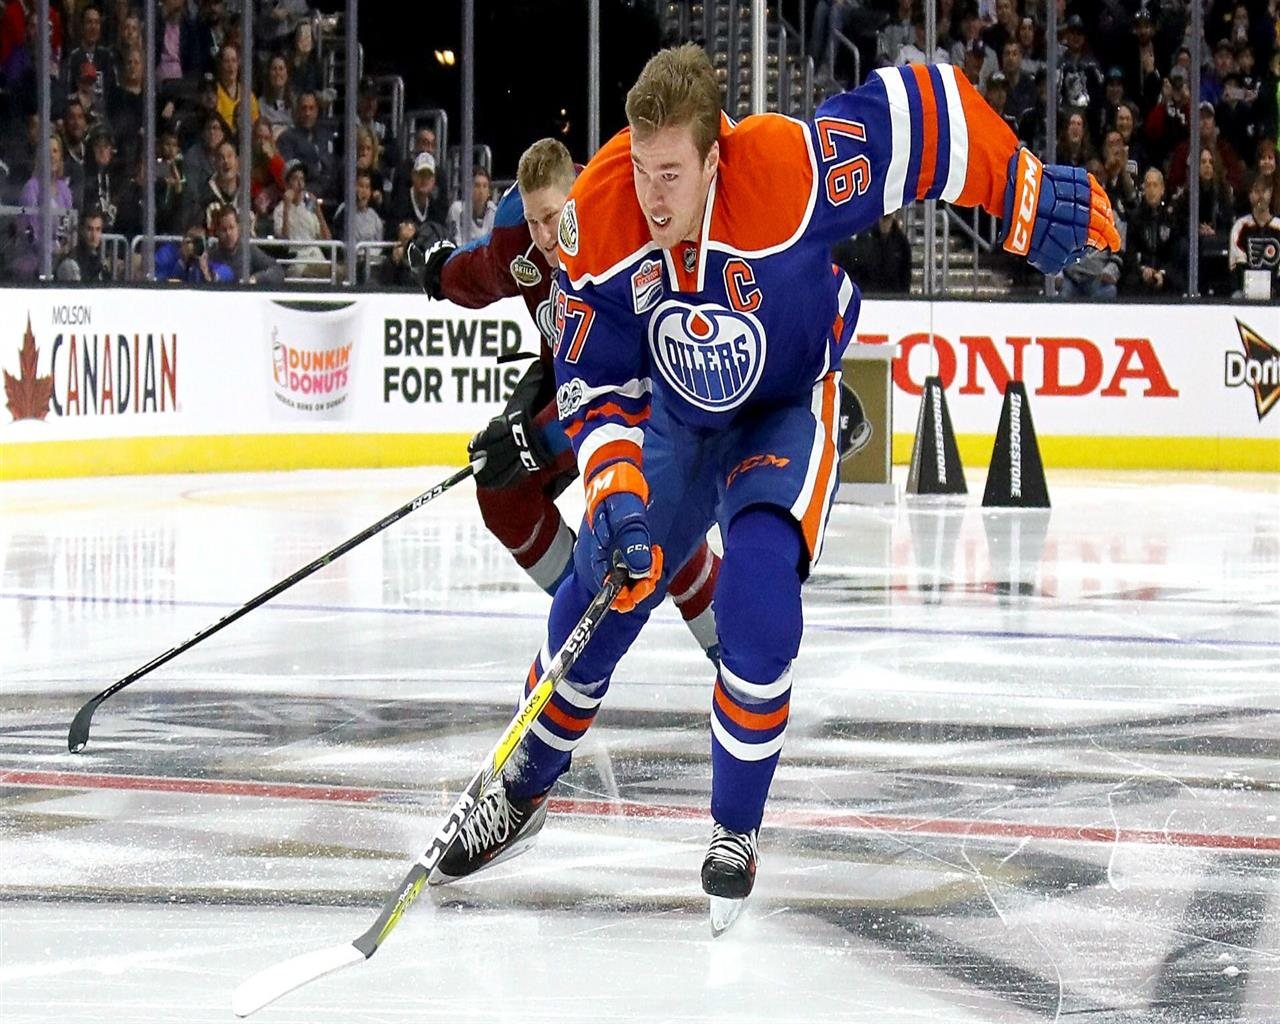 1280x1024 Ice Hockey Player Connor McDavid Wallpaper